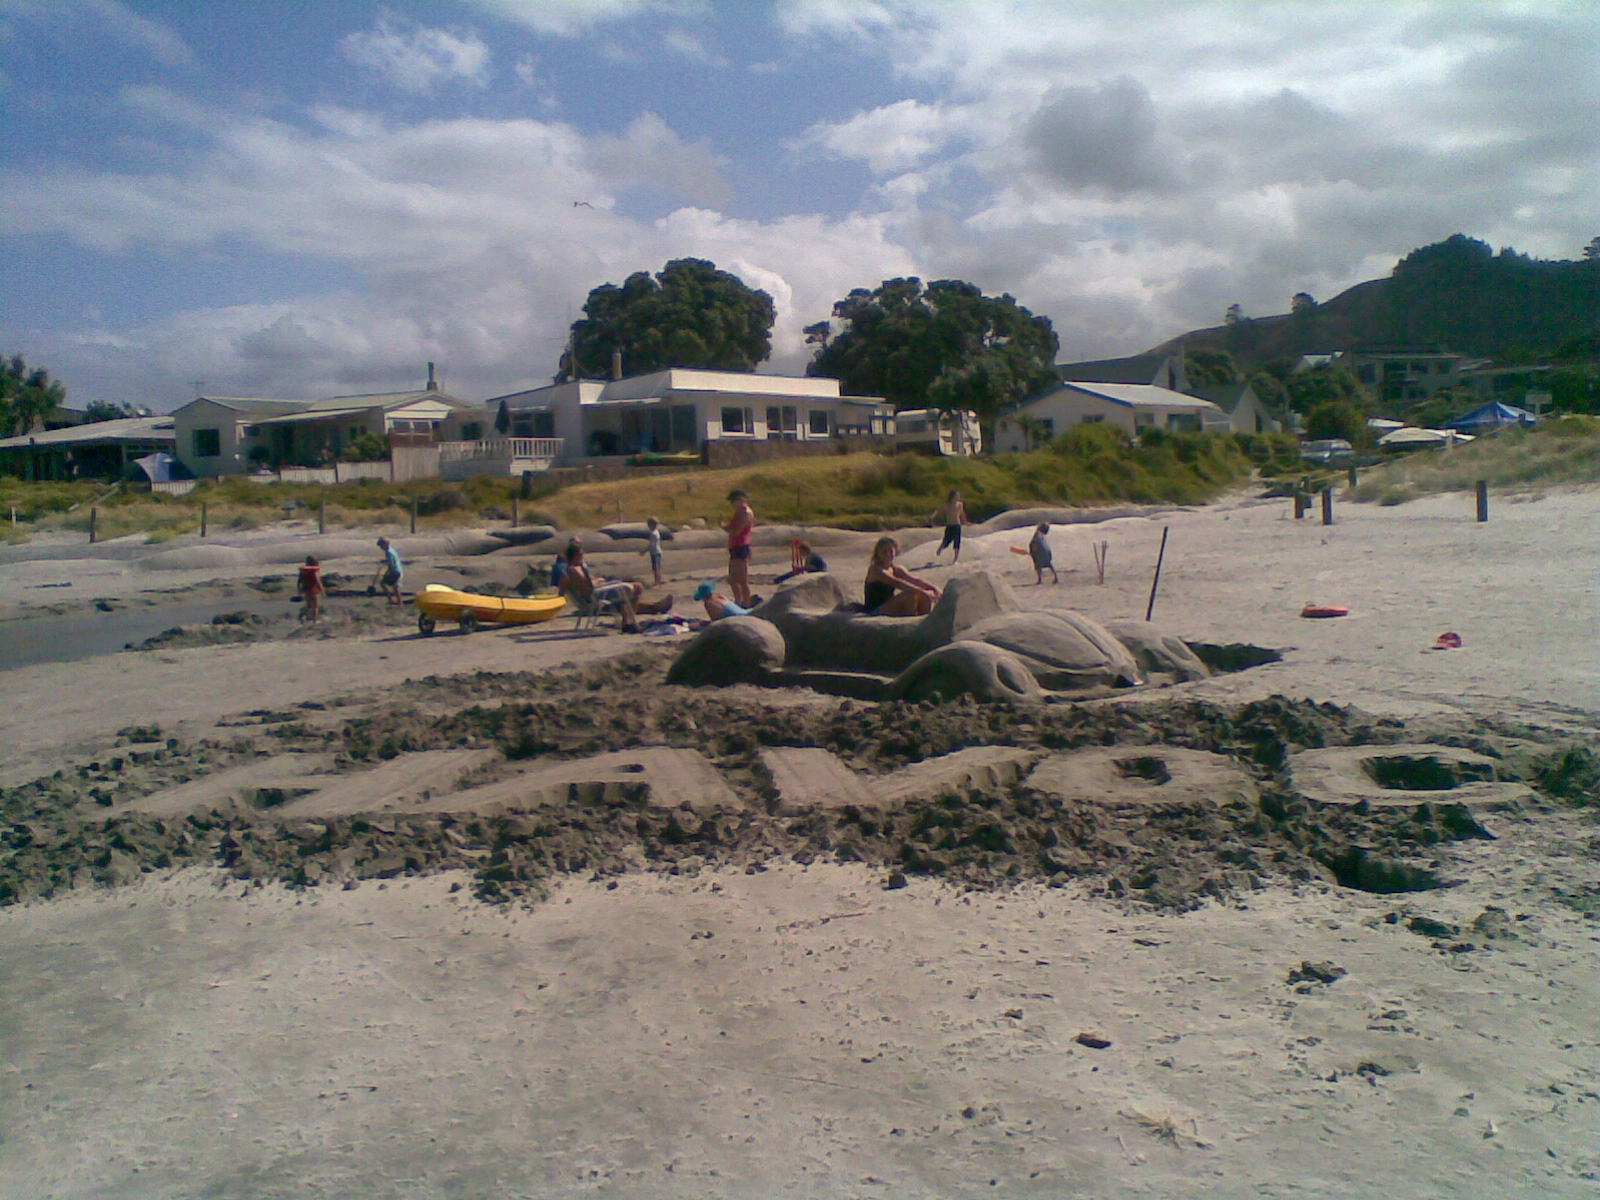 [havoc+made+of+sand+waihi+beach]